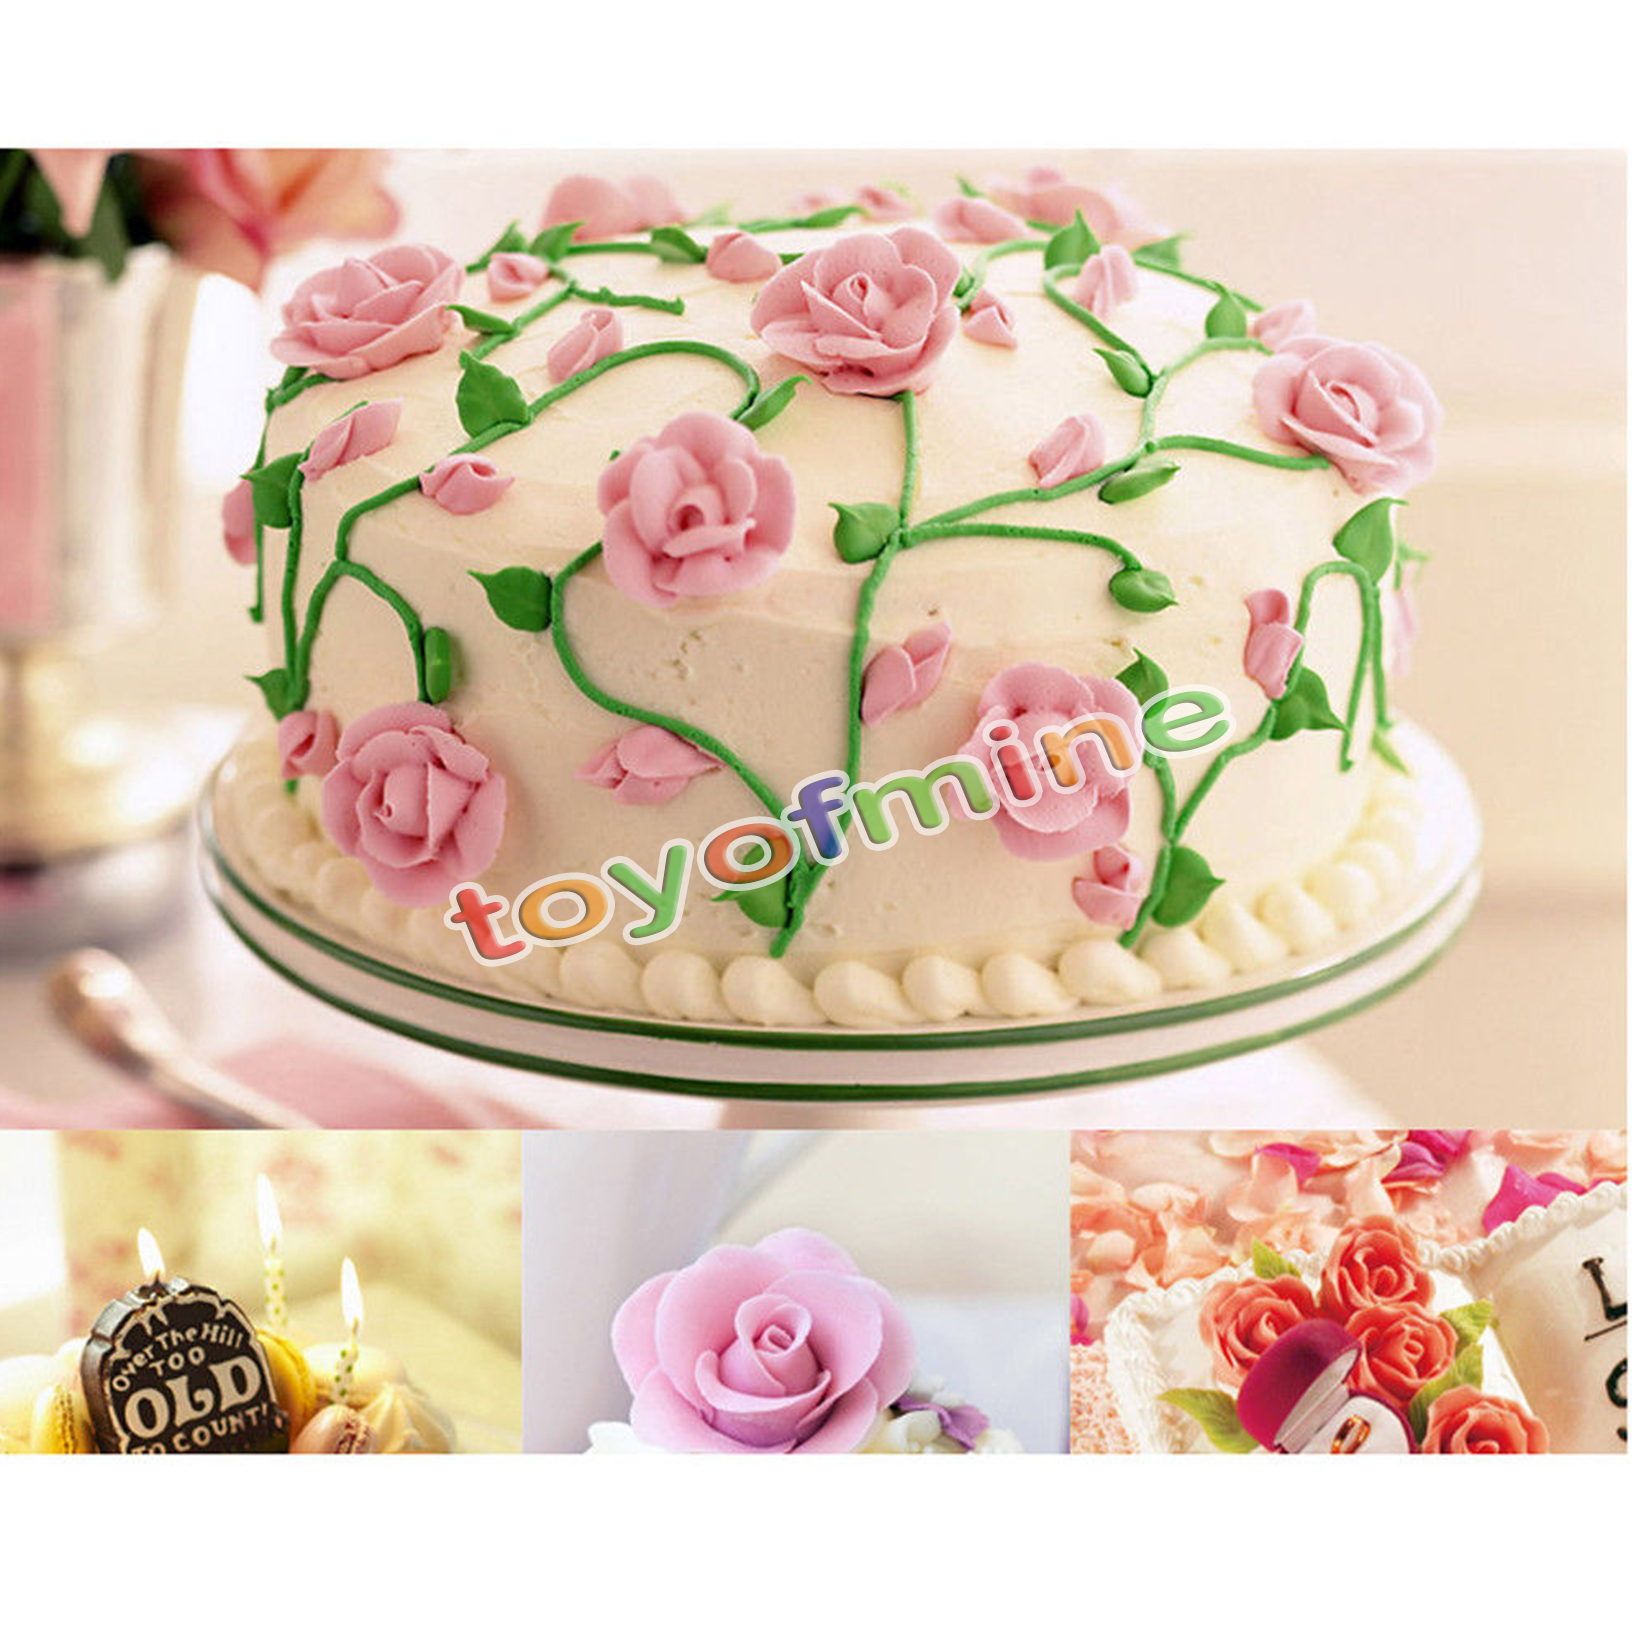 Cake Decorating Nails : 5pc Piping Flower Nail Icing Cream Bake Cake Decorating ...